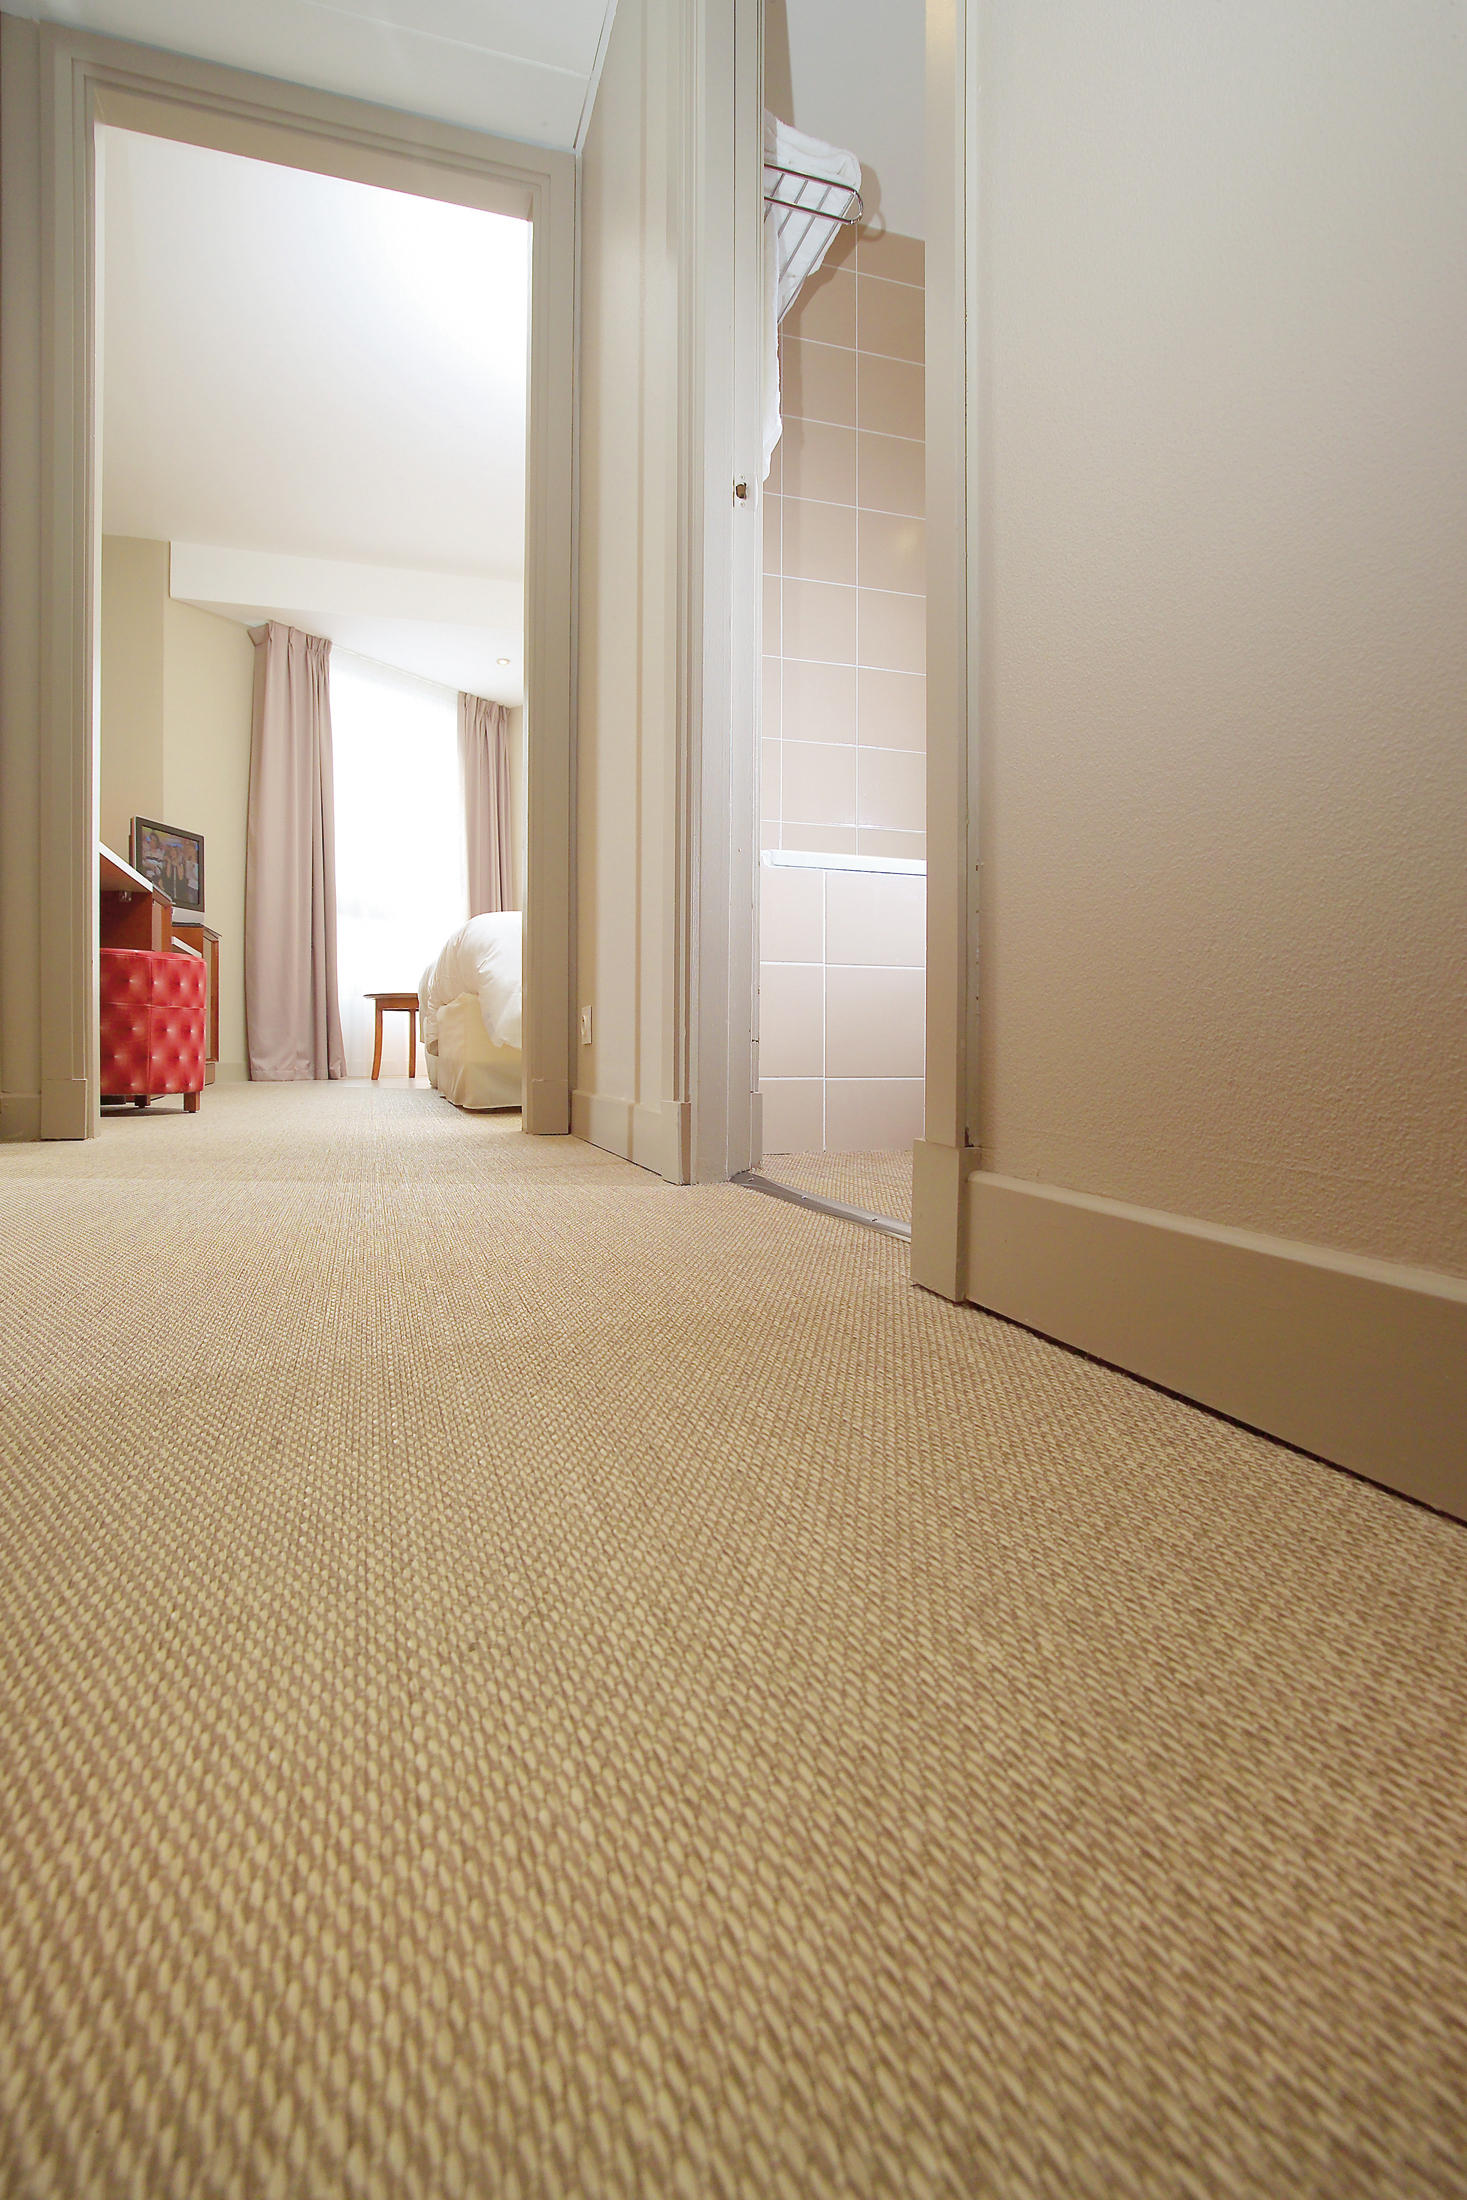 Bkb sisal plain beige wall to wall carpets from bolon for Wall to wall carpeting